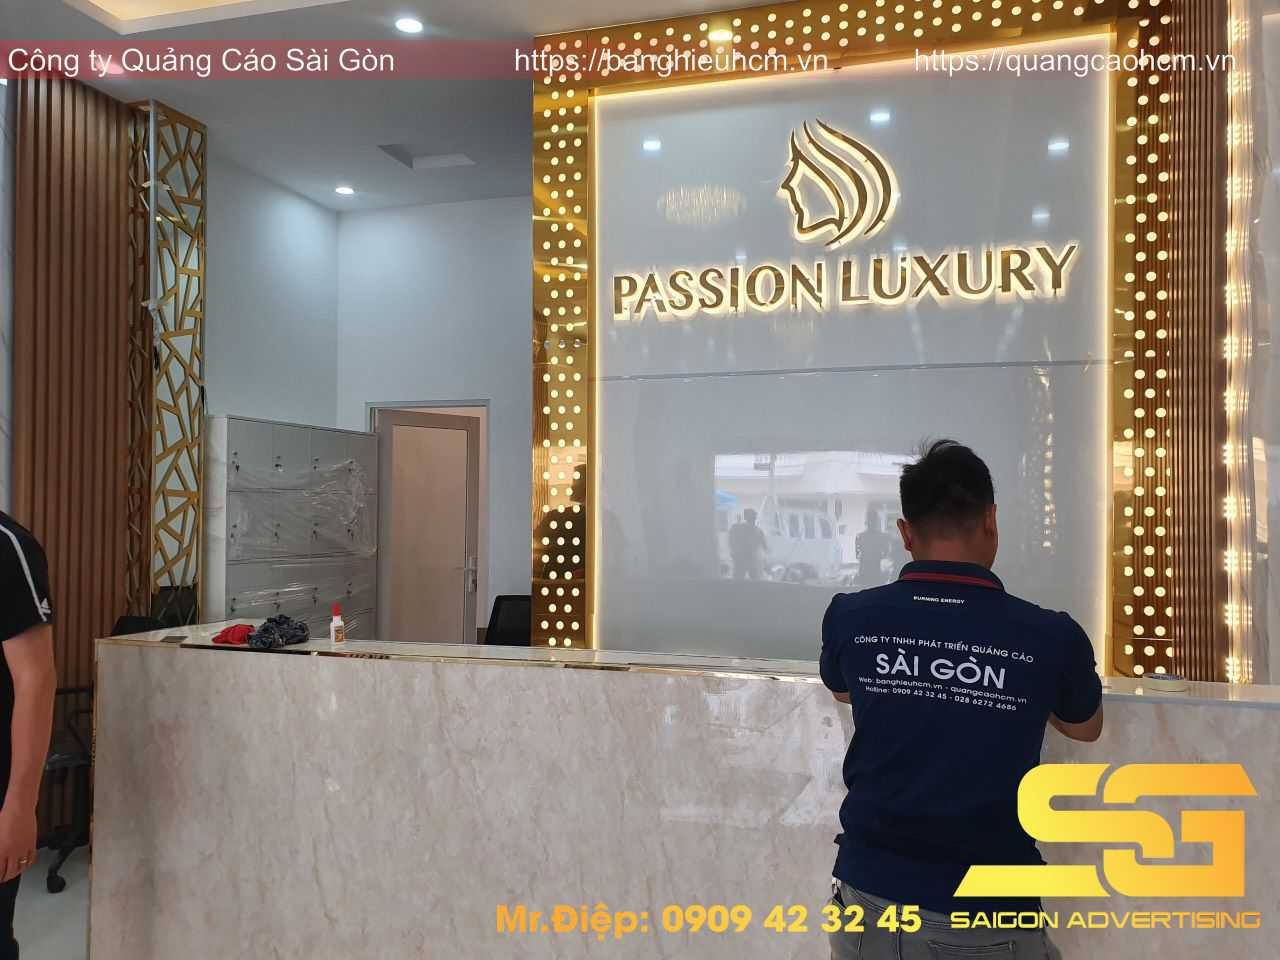 Setup spa Passion Luxury